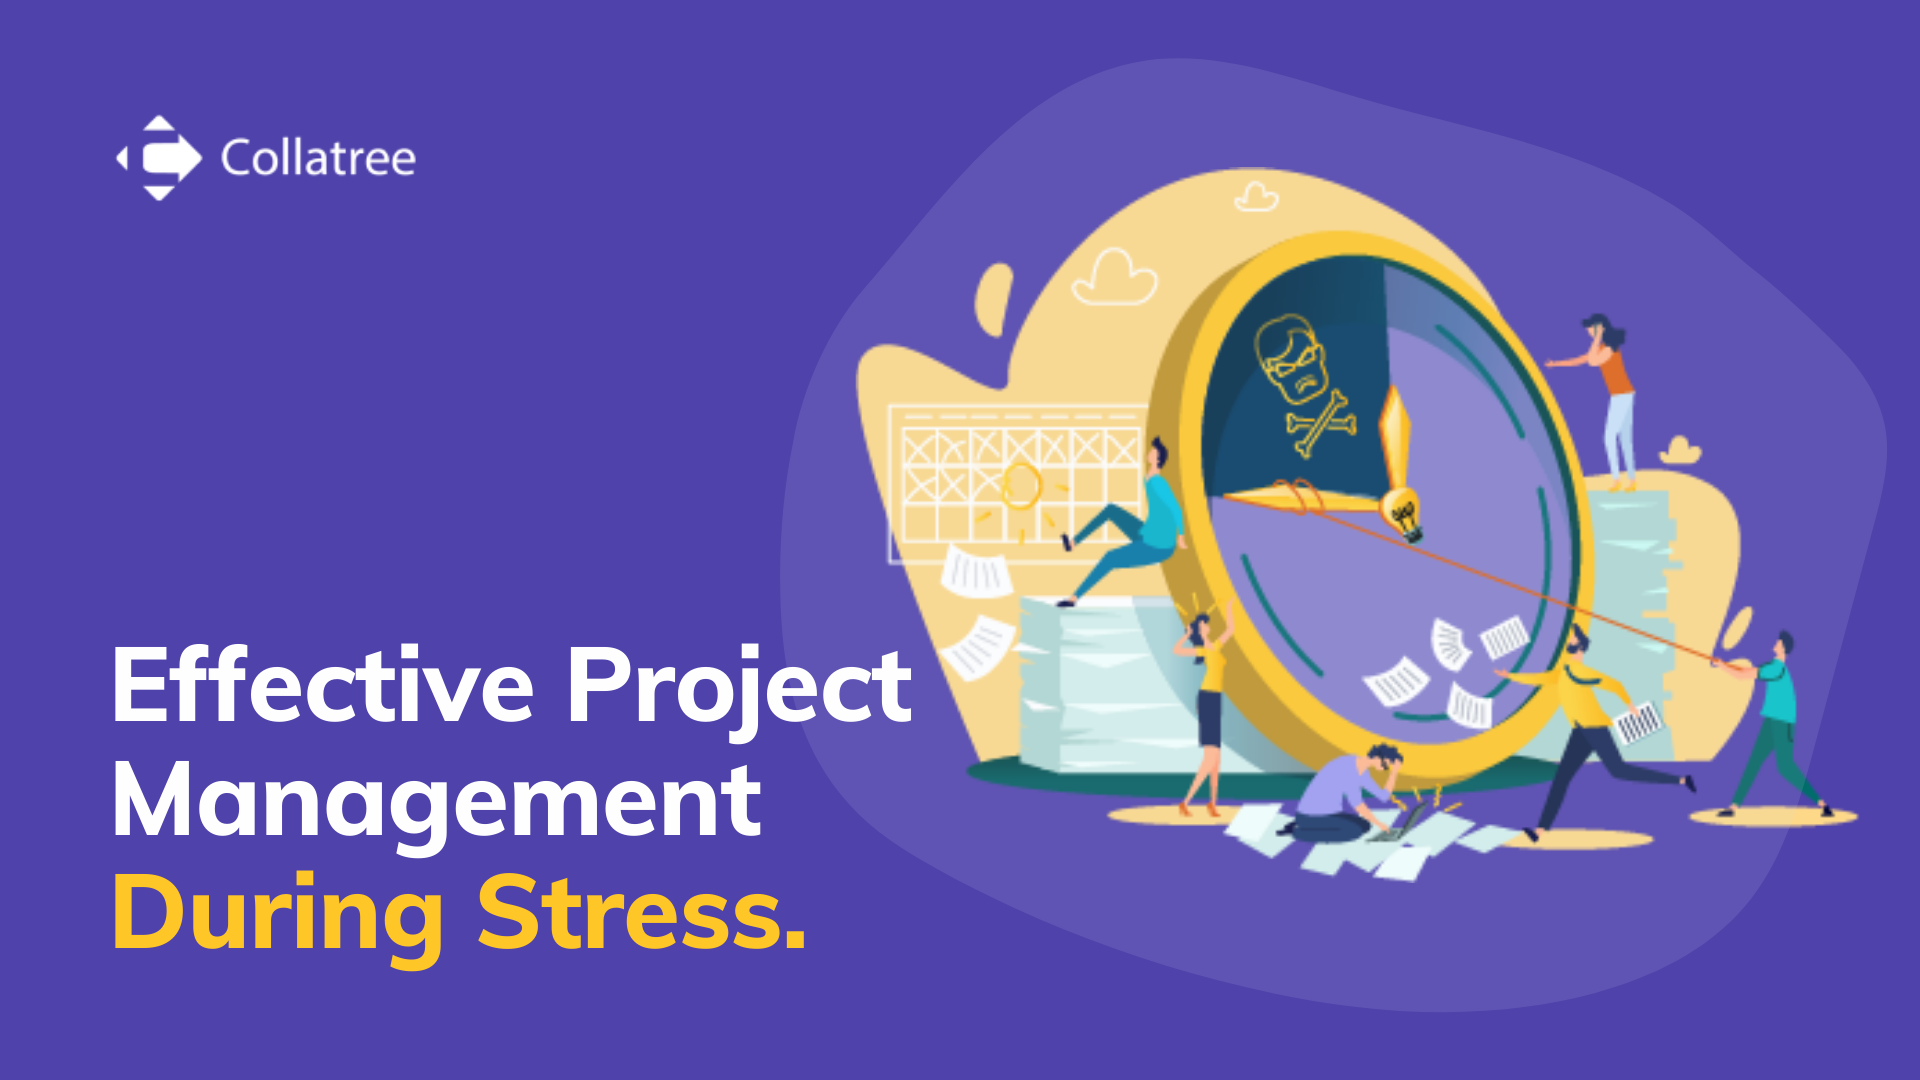 Effective Project Management During Stress.